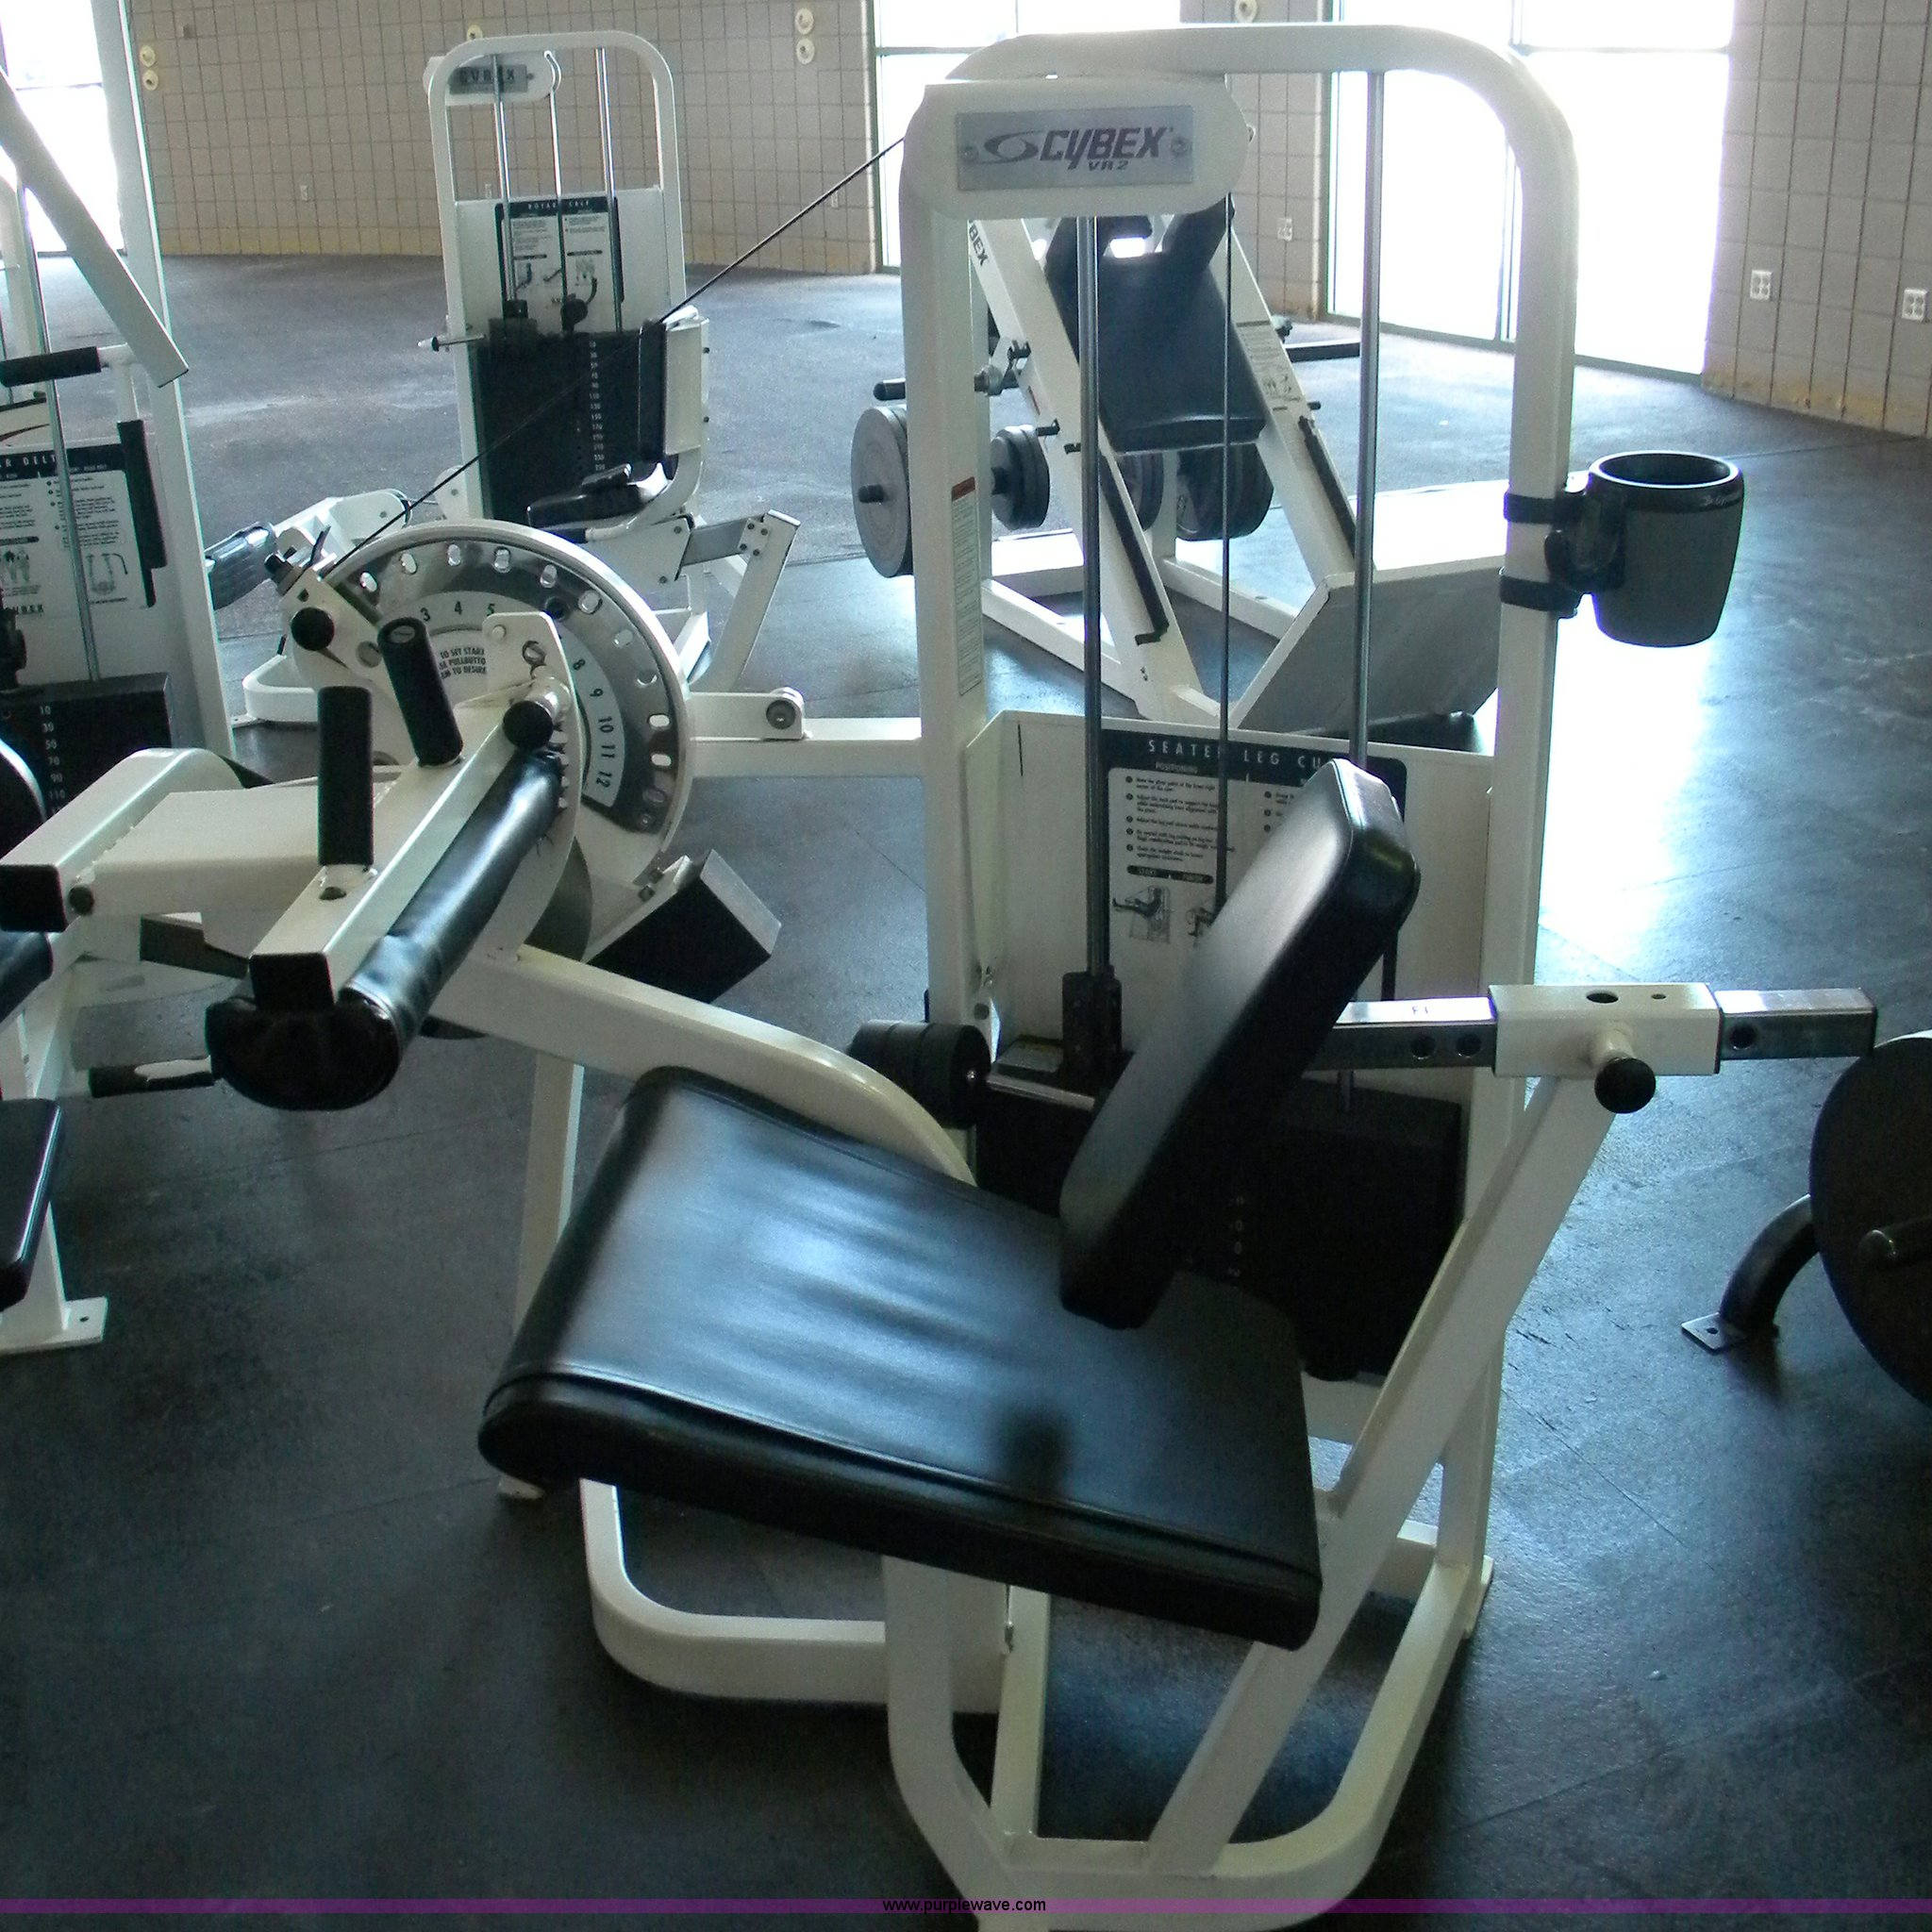 Cybex VR2 seated leg curl | Item B1935 | SOLD! Tuesday April